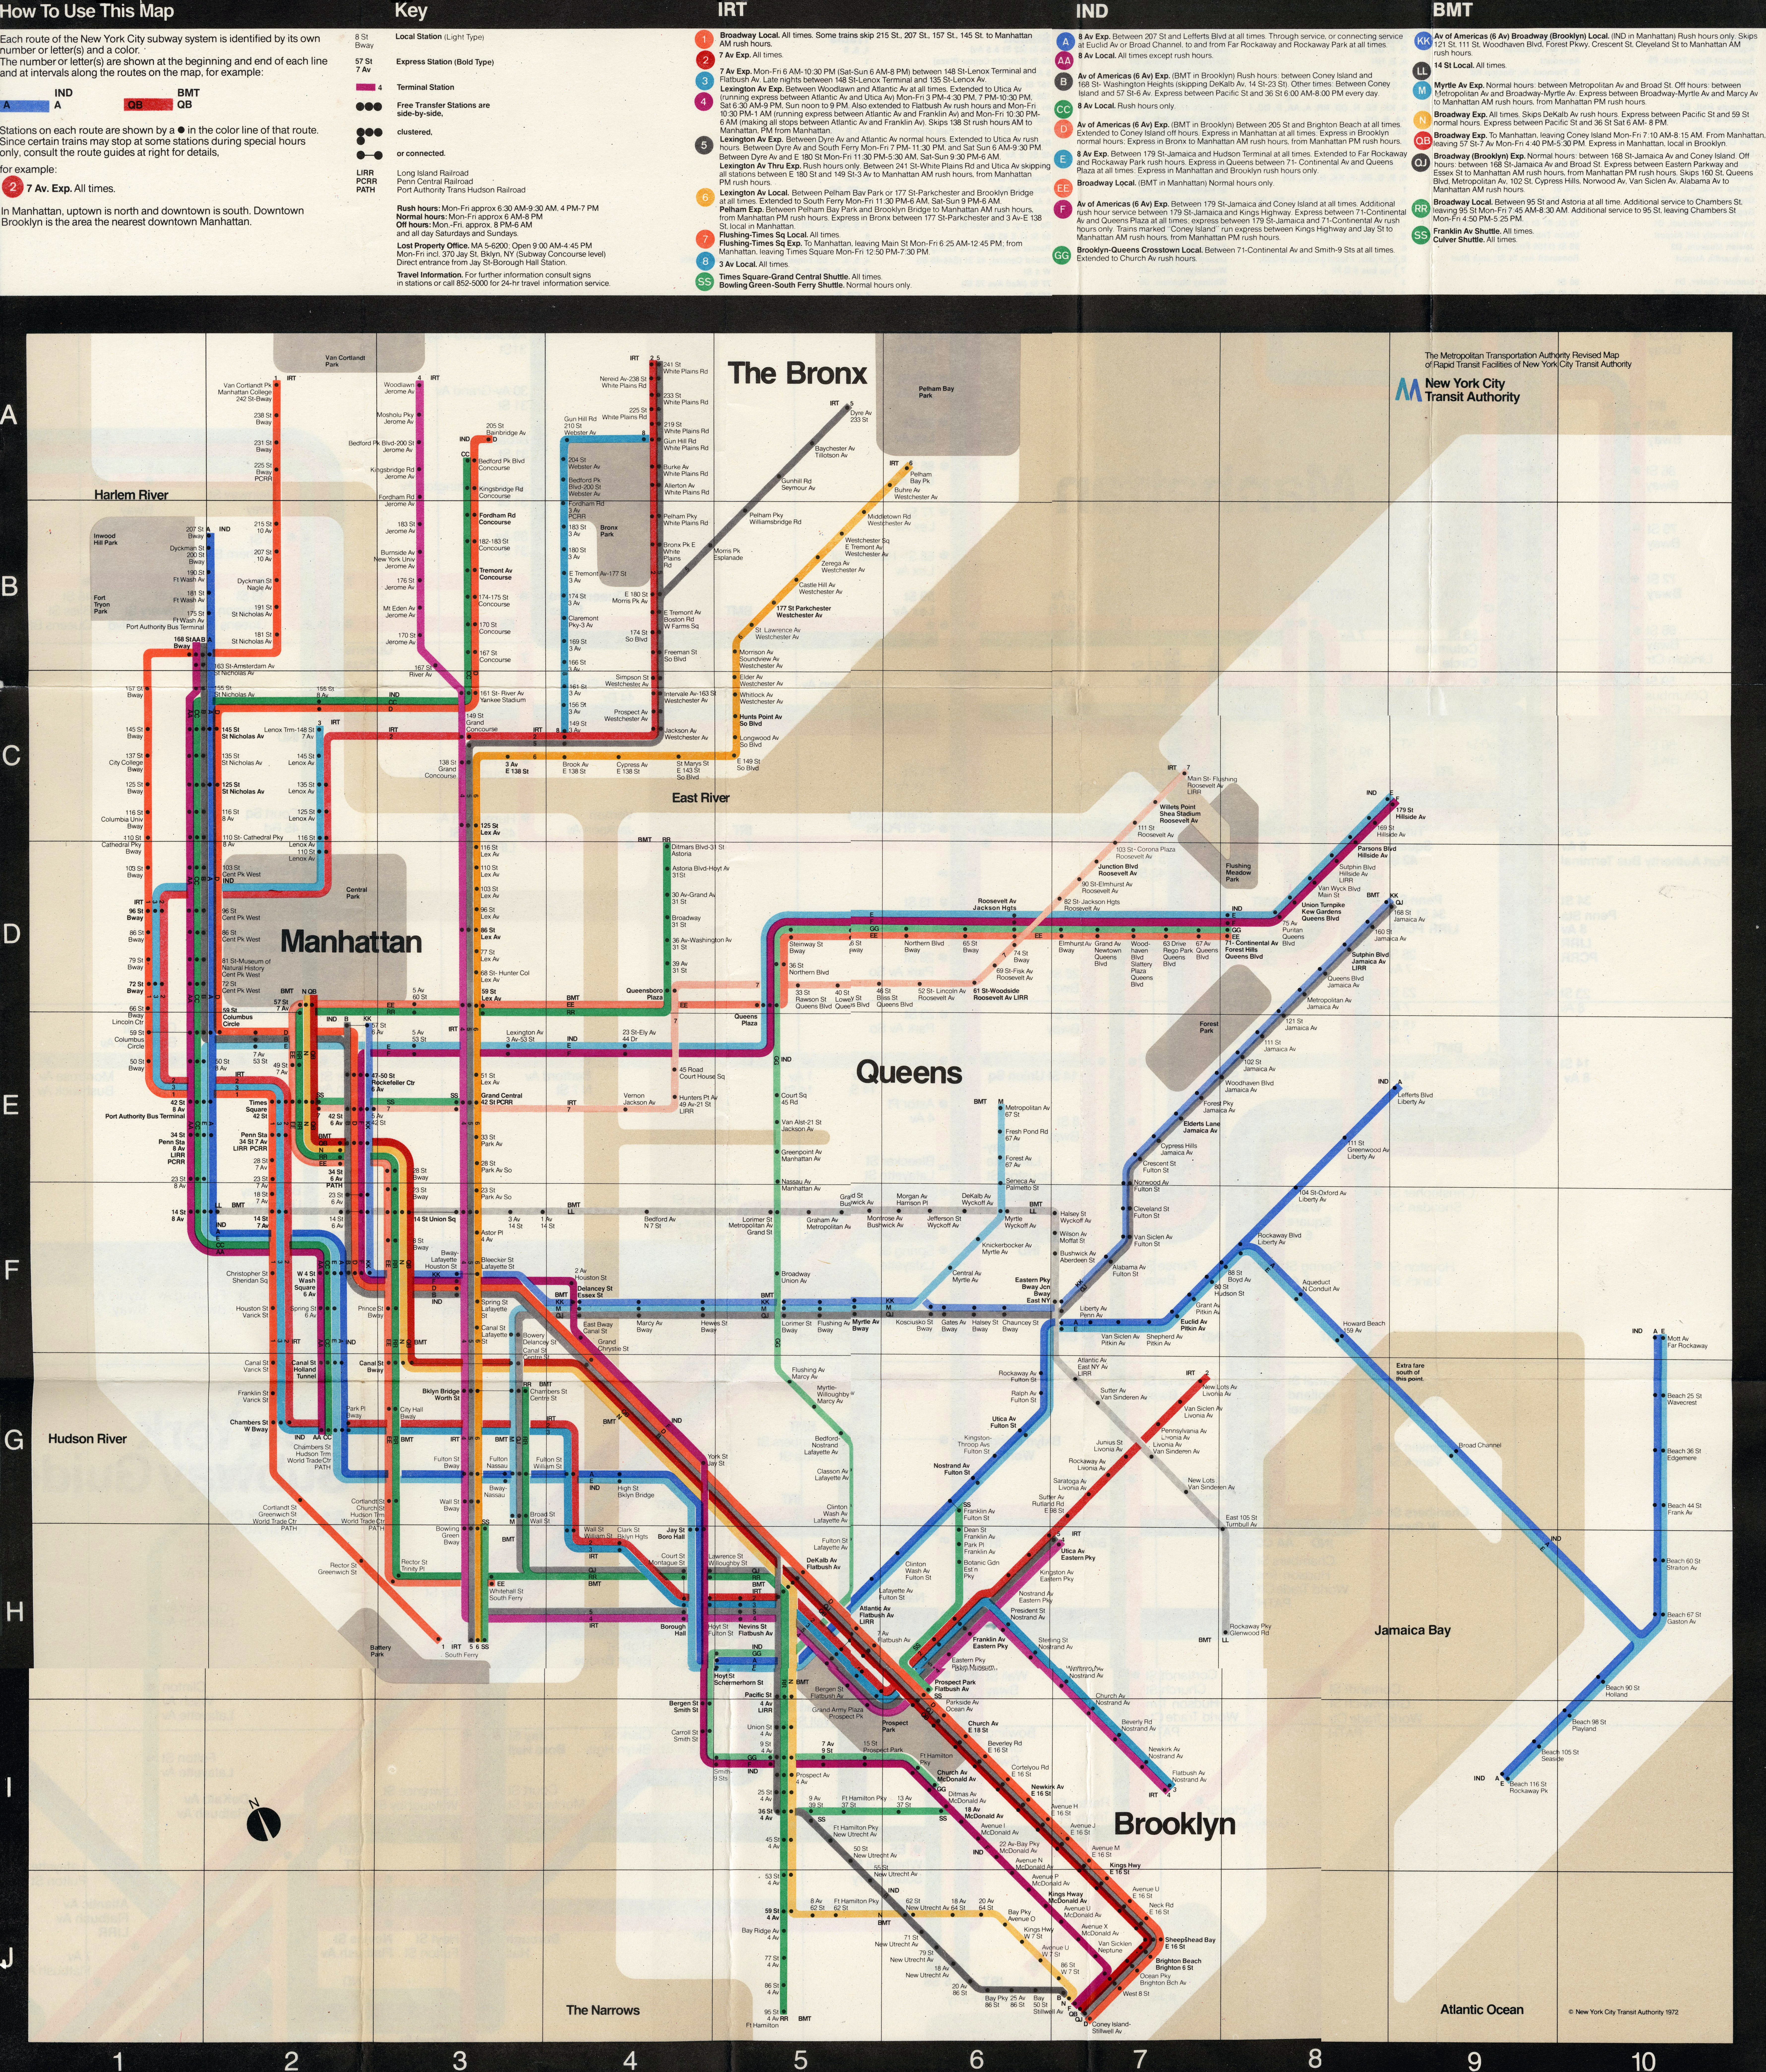 1958 New York Subway Map.New York City Transit Authority On Board With Design